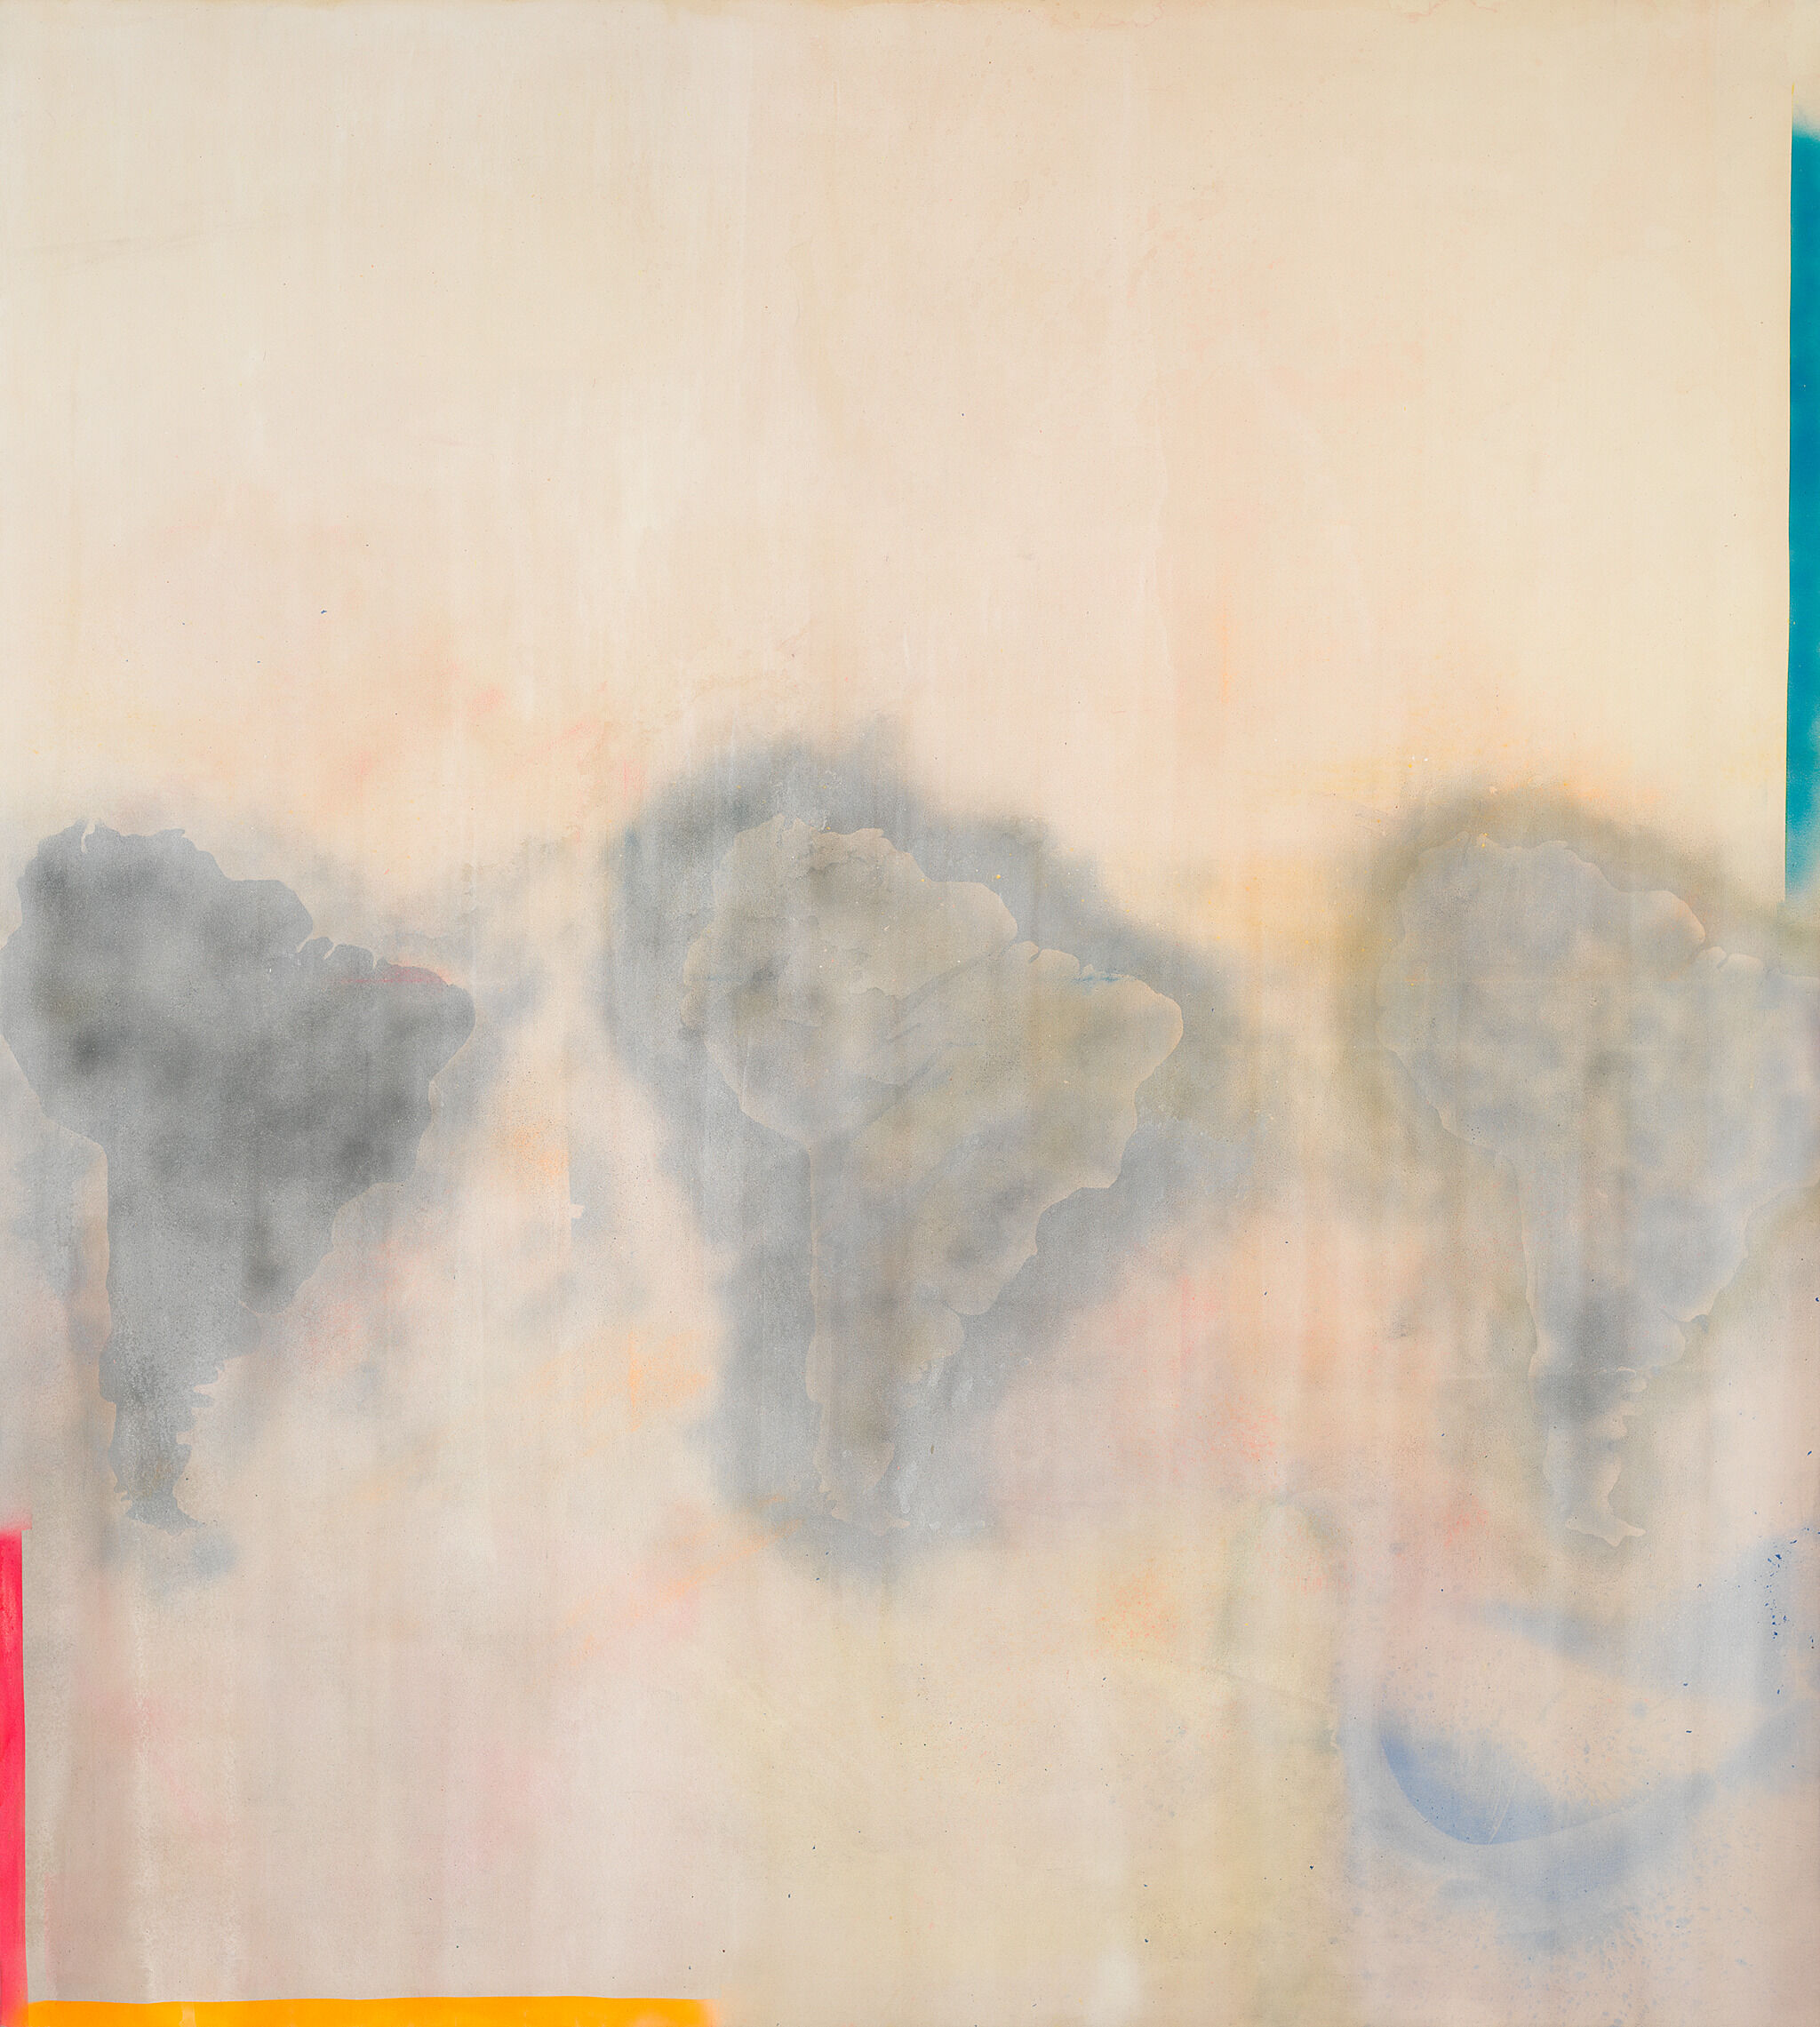 A painting that depictes the shape of South America three times, under diluted color washes